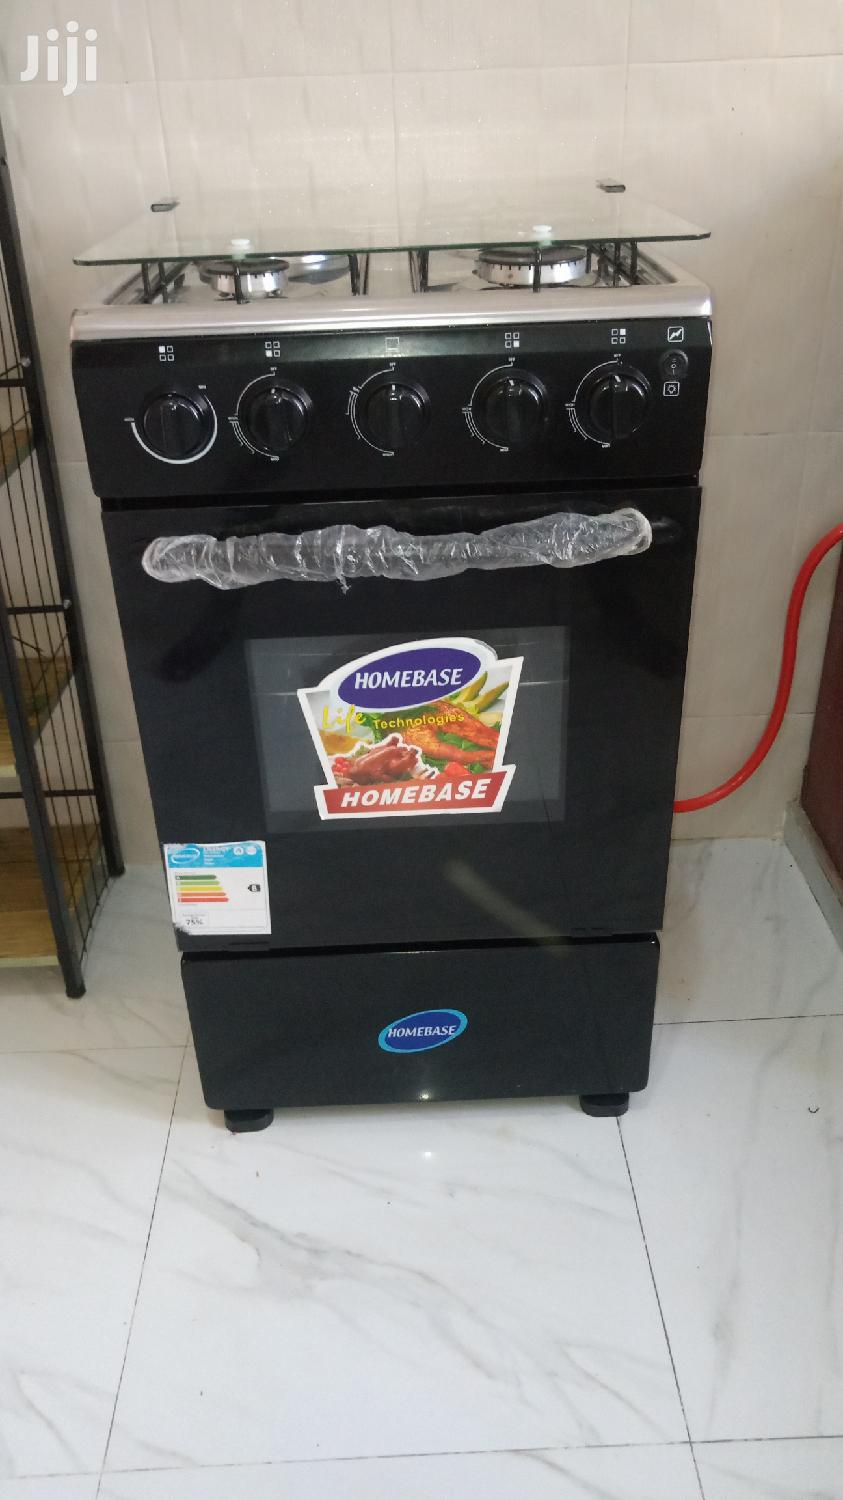 Archive: Homebase HB 60w4g-1 Size 50X60 Oven 4 Plates 1 Electric